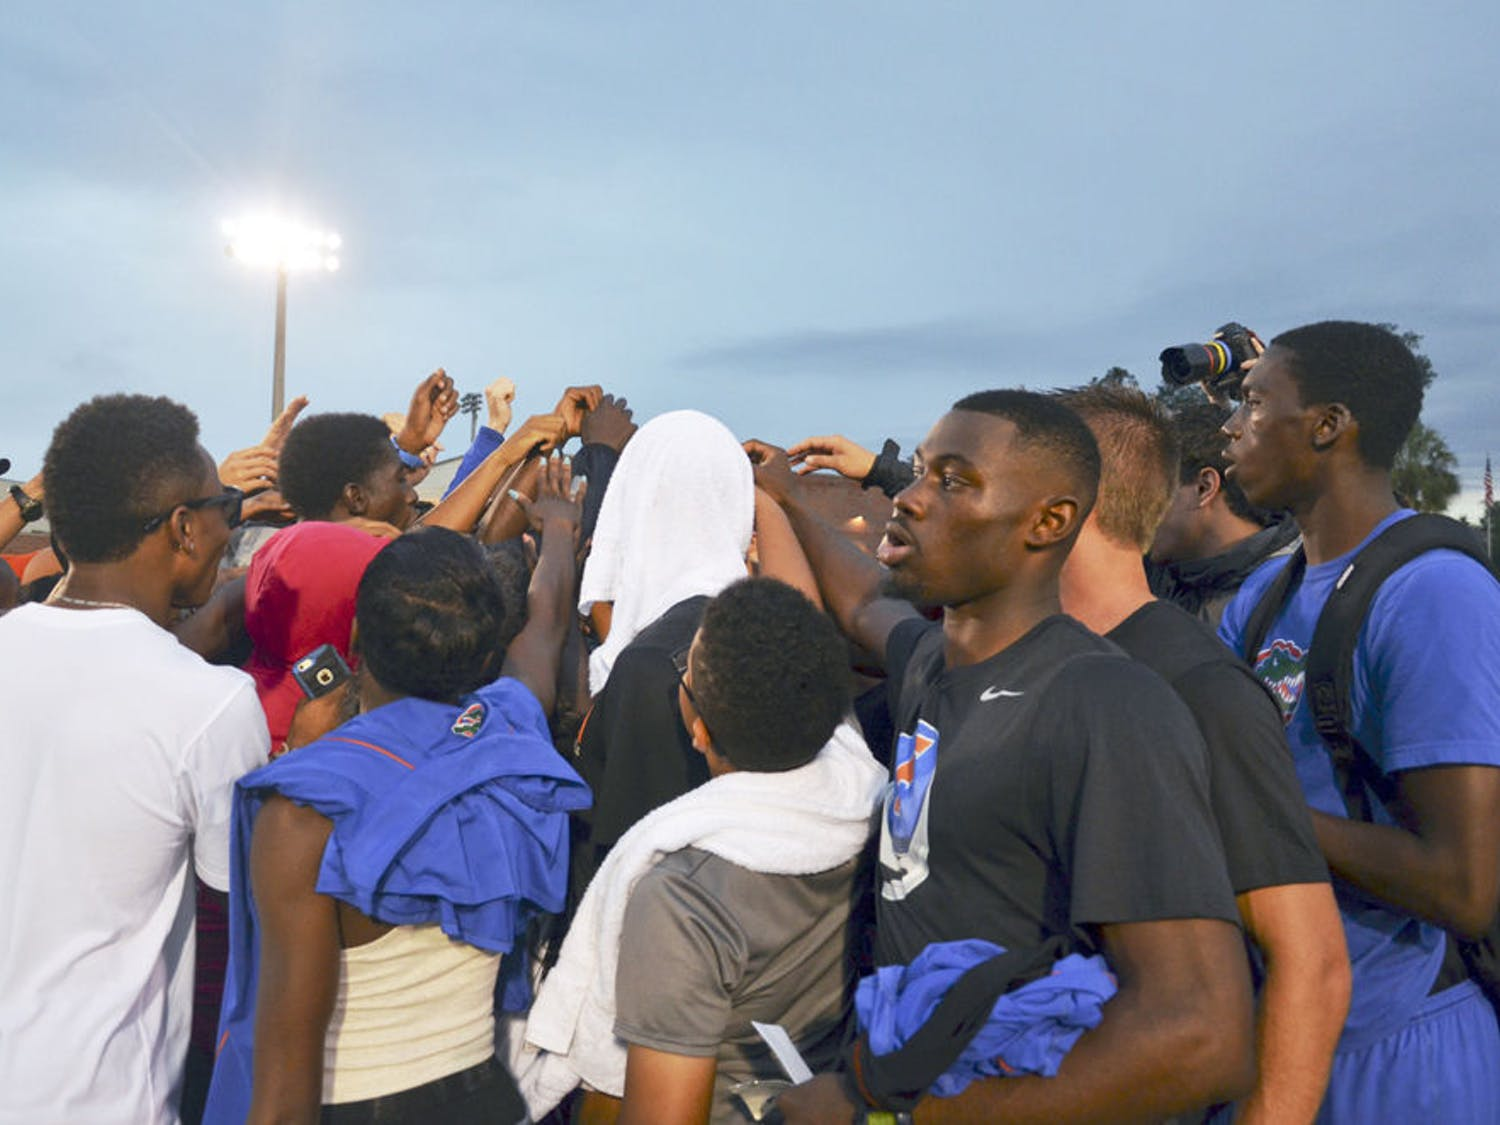 The Florida track and field team huddles together following the conclusion of the 2015 Florida Relays on Saturday at the Percy Beard Track.